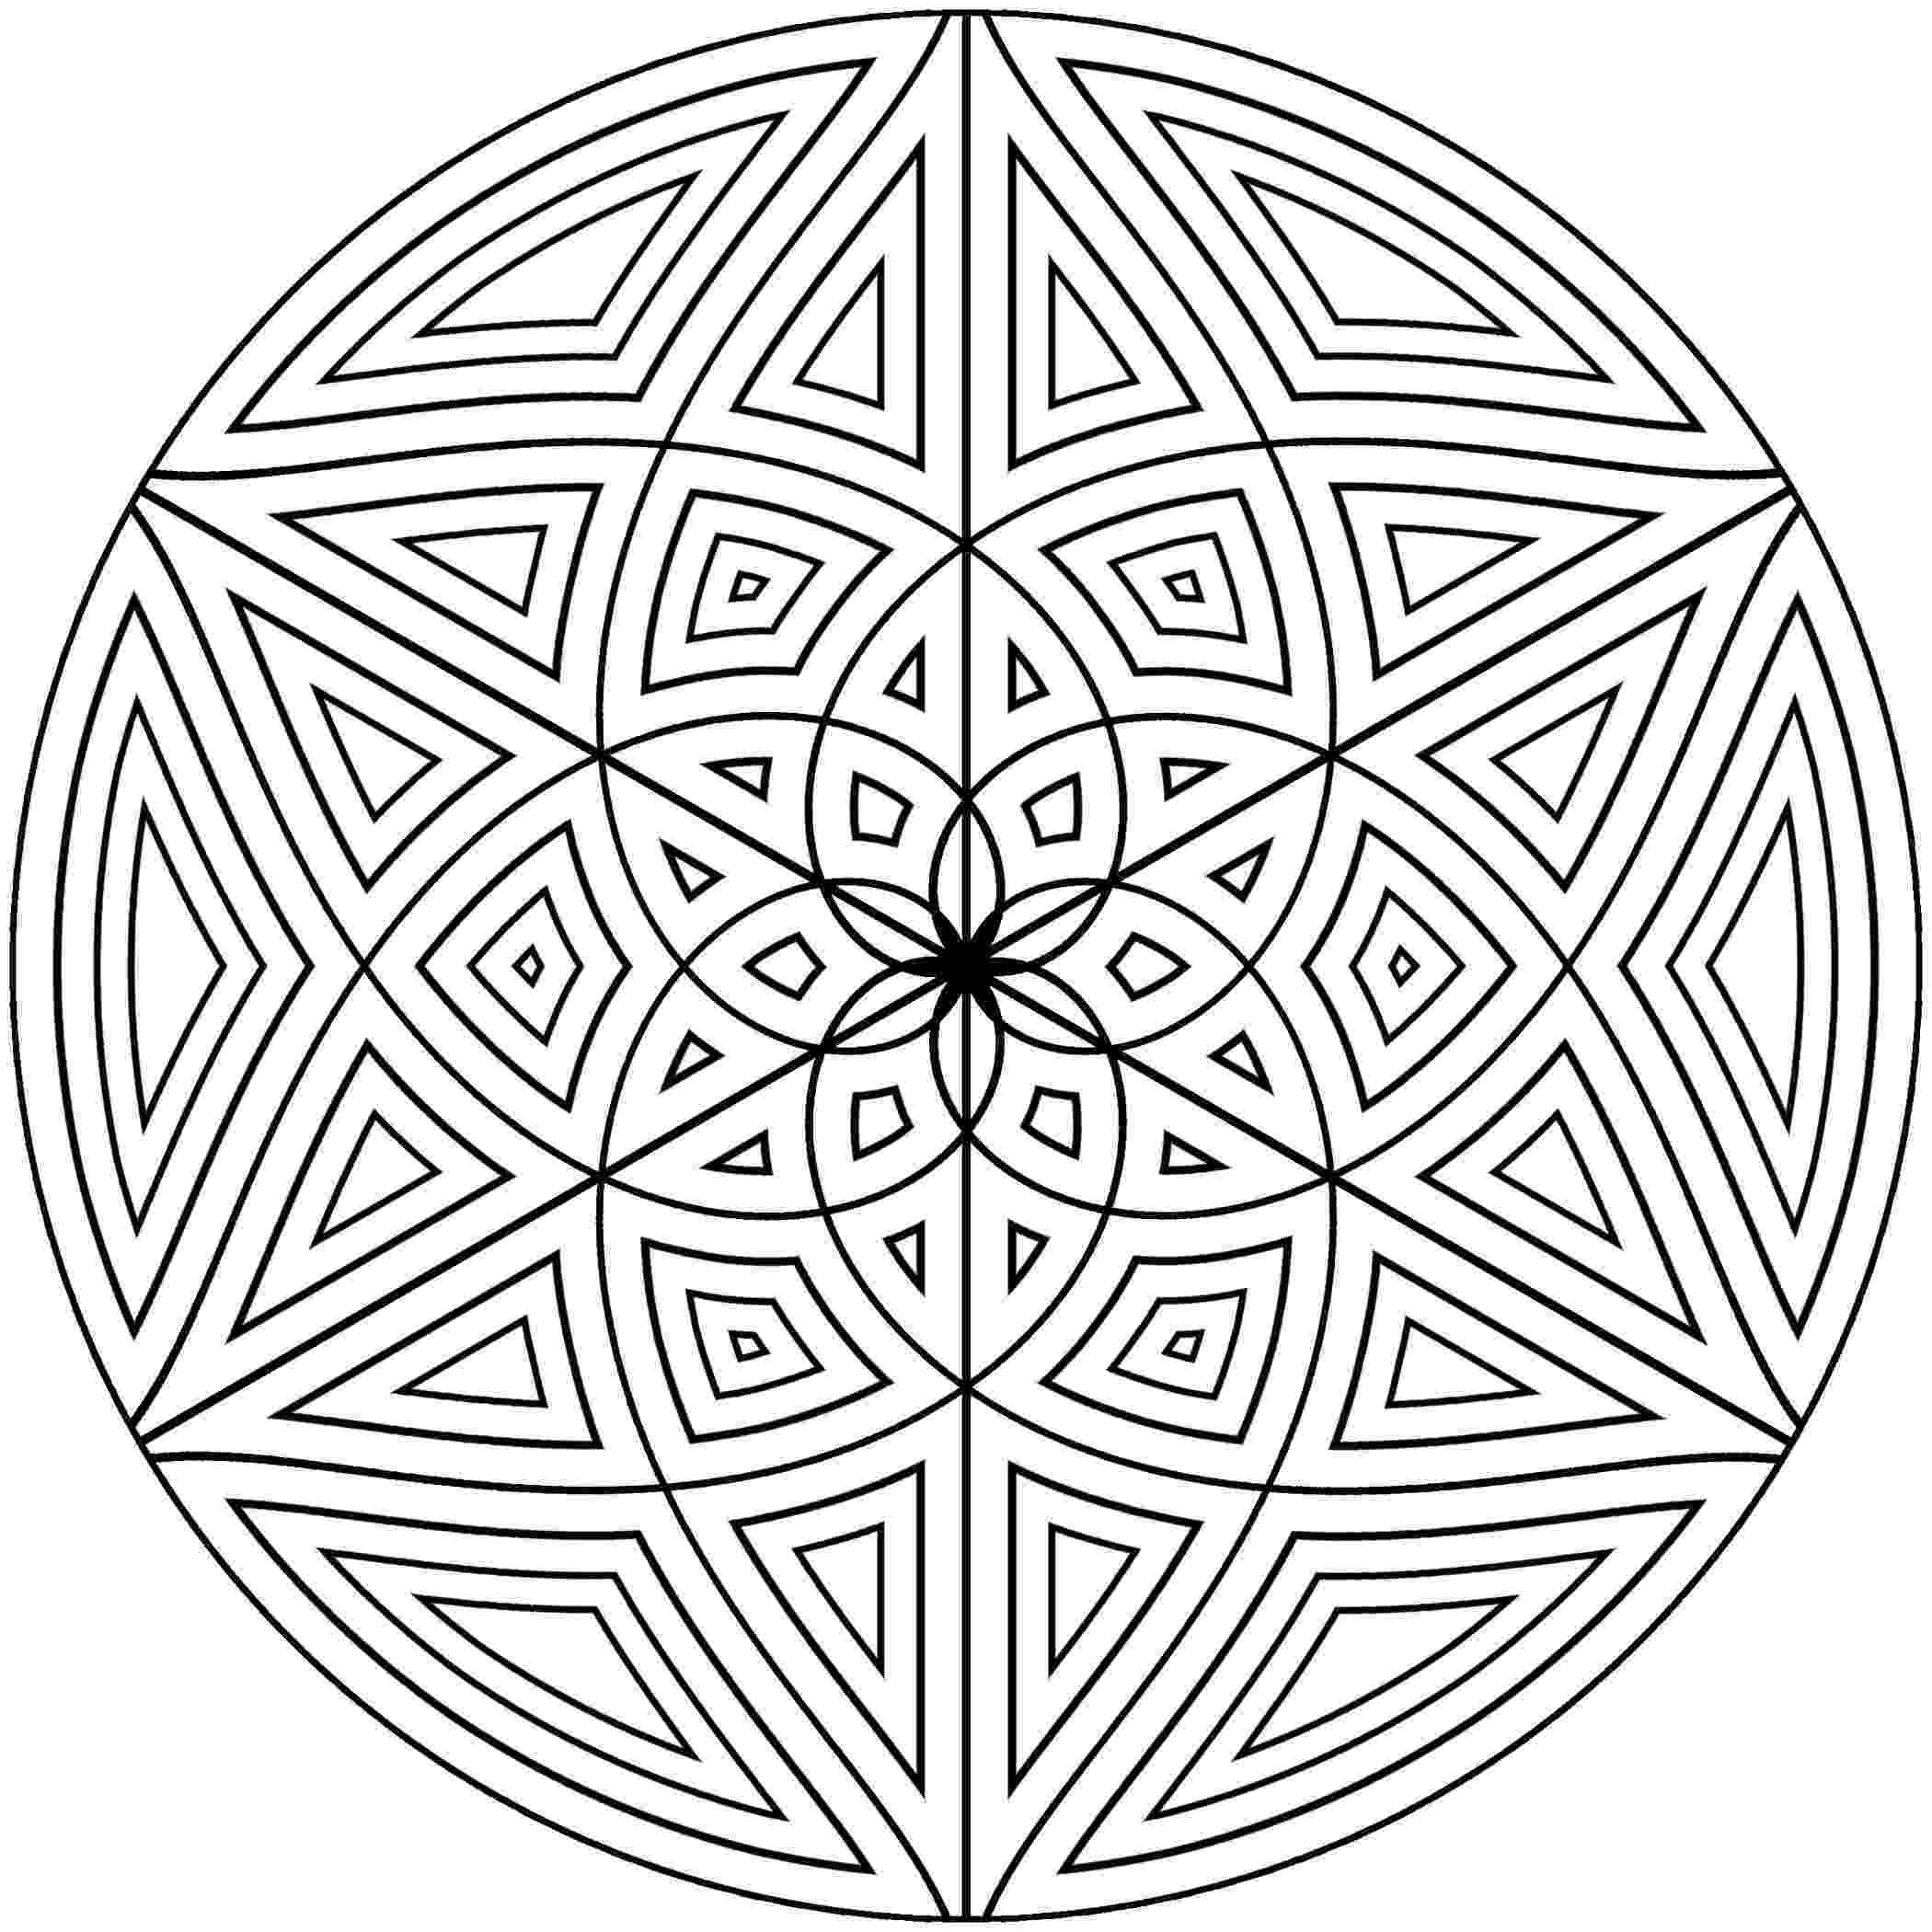 patterns coloring free printable geometric coloring pages for adults coloring patterns